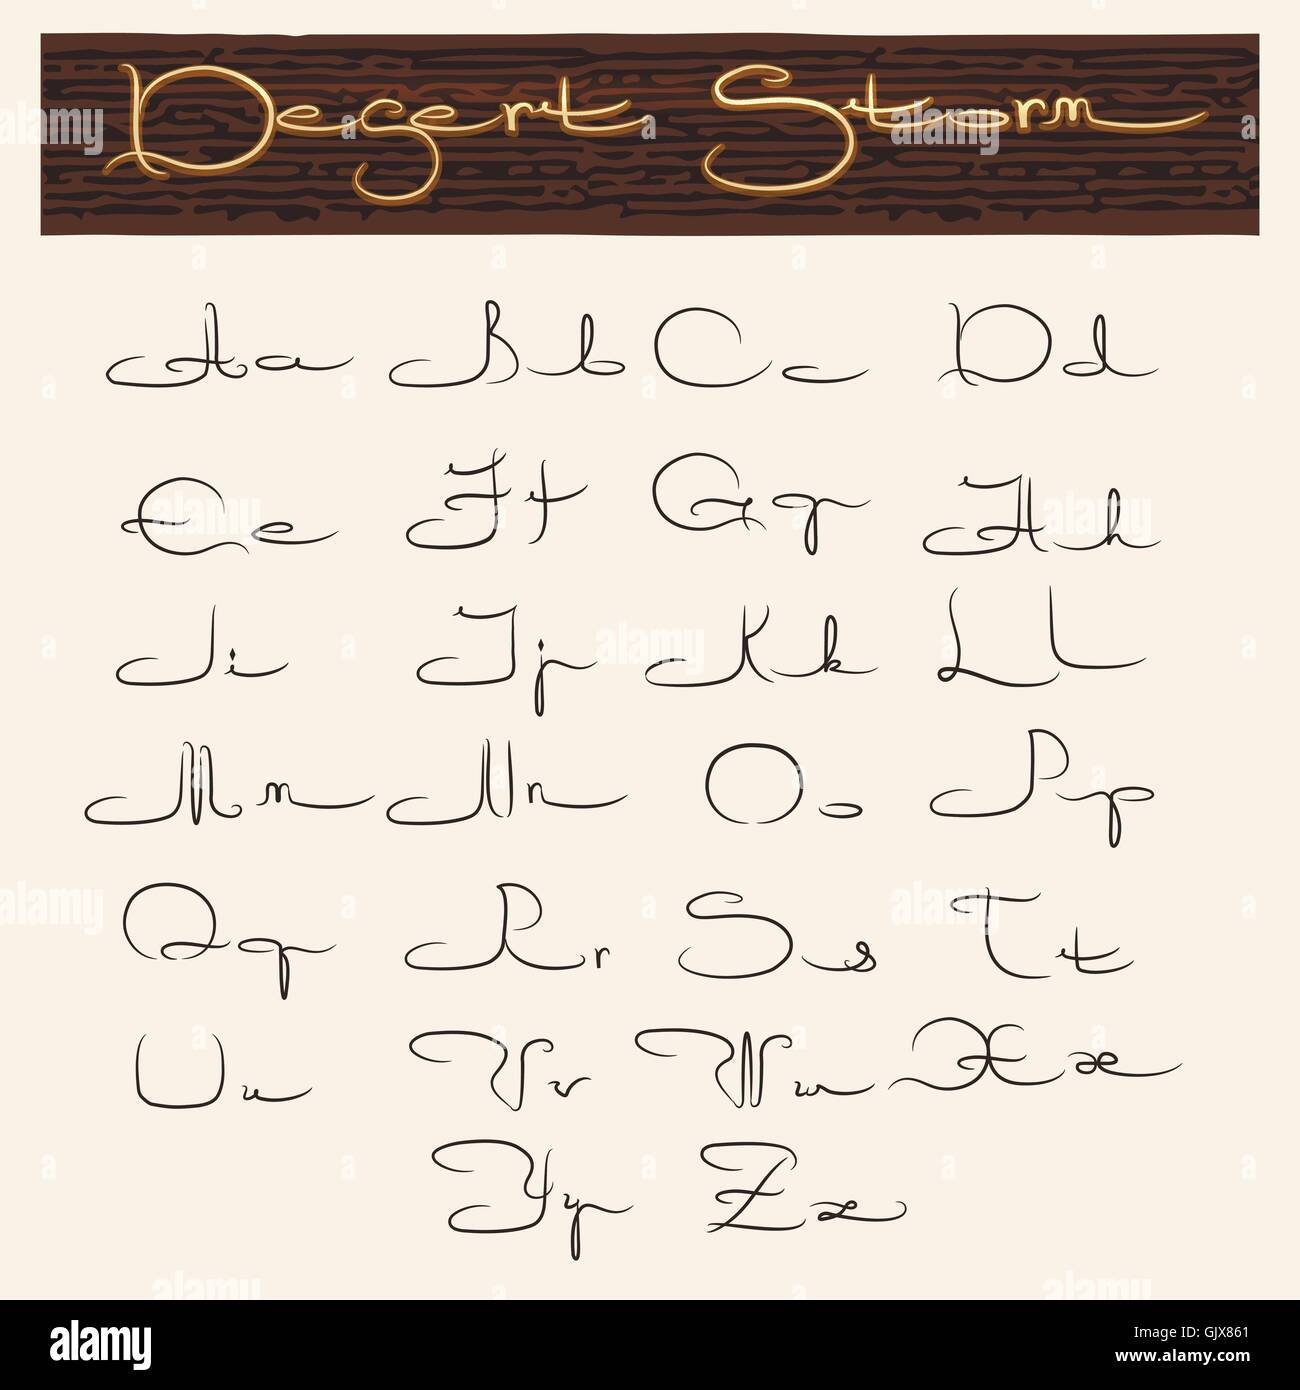 Handmade Latin alphabet in Arabic style. Uppercase and lowercase letters. - Stock Image